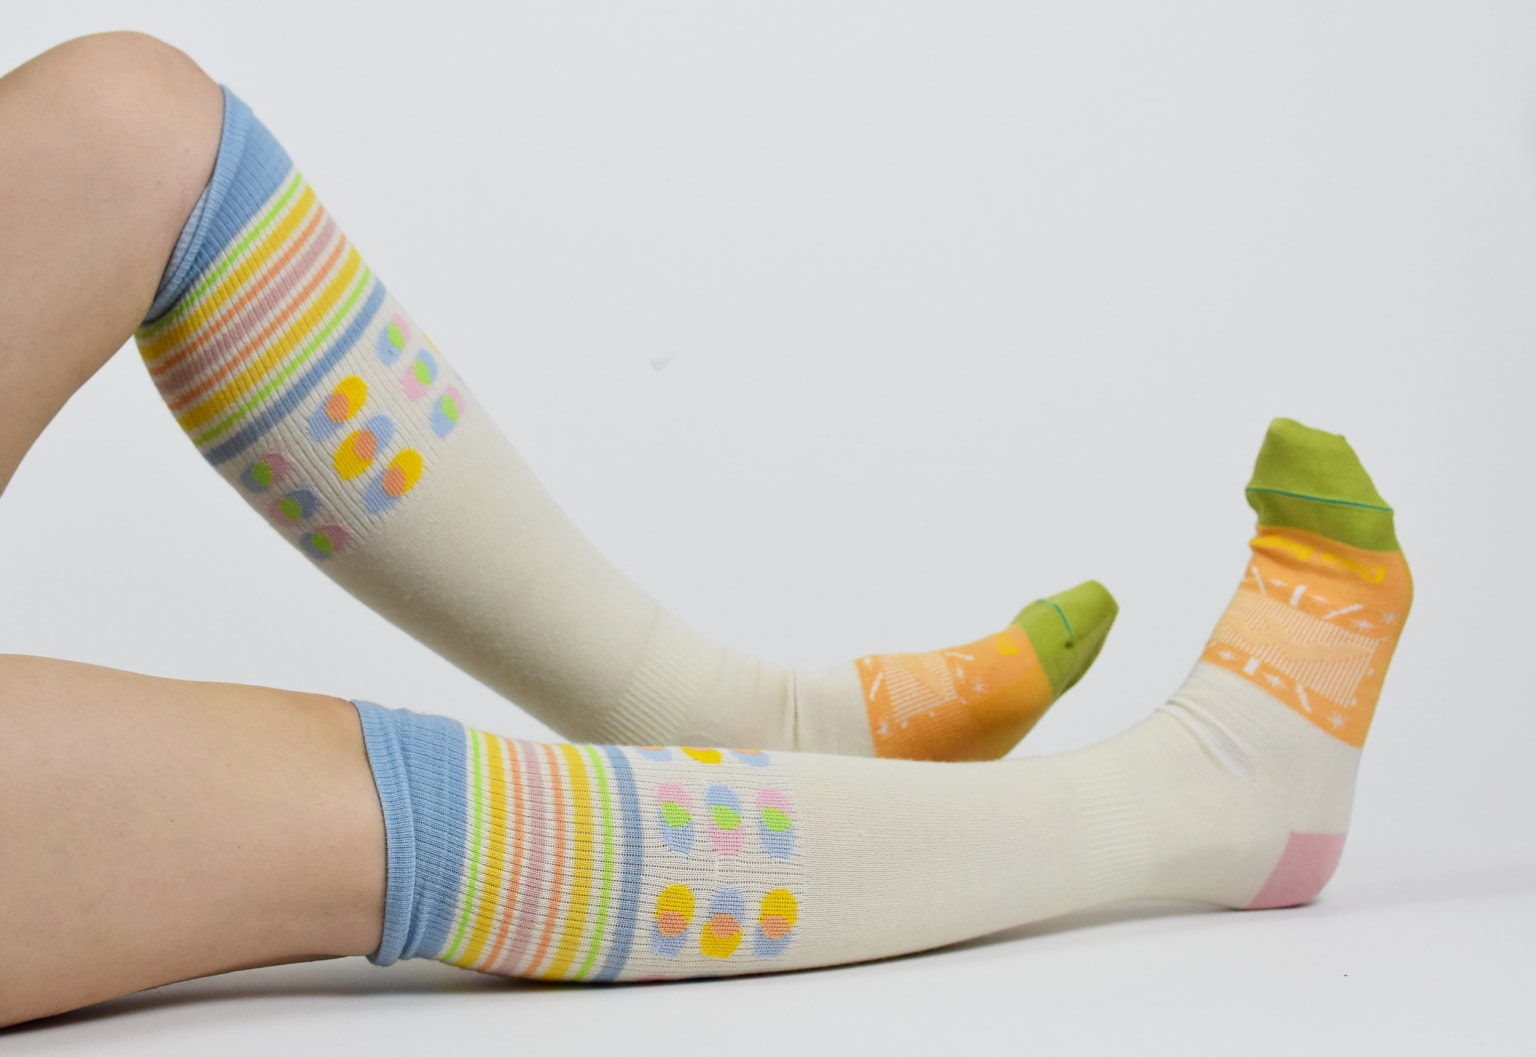 Darn Tough Sock Designs